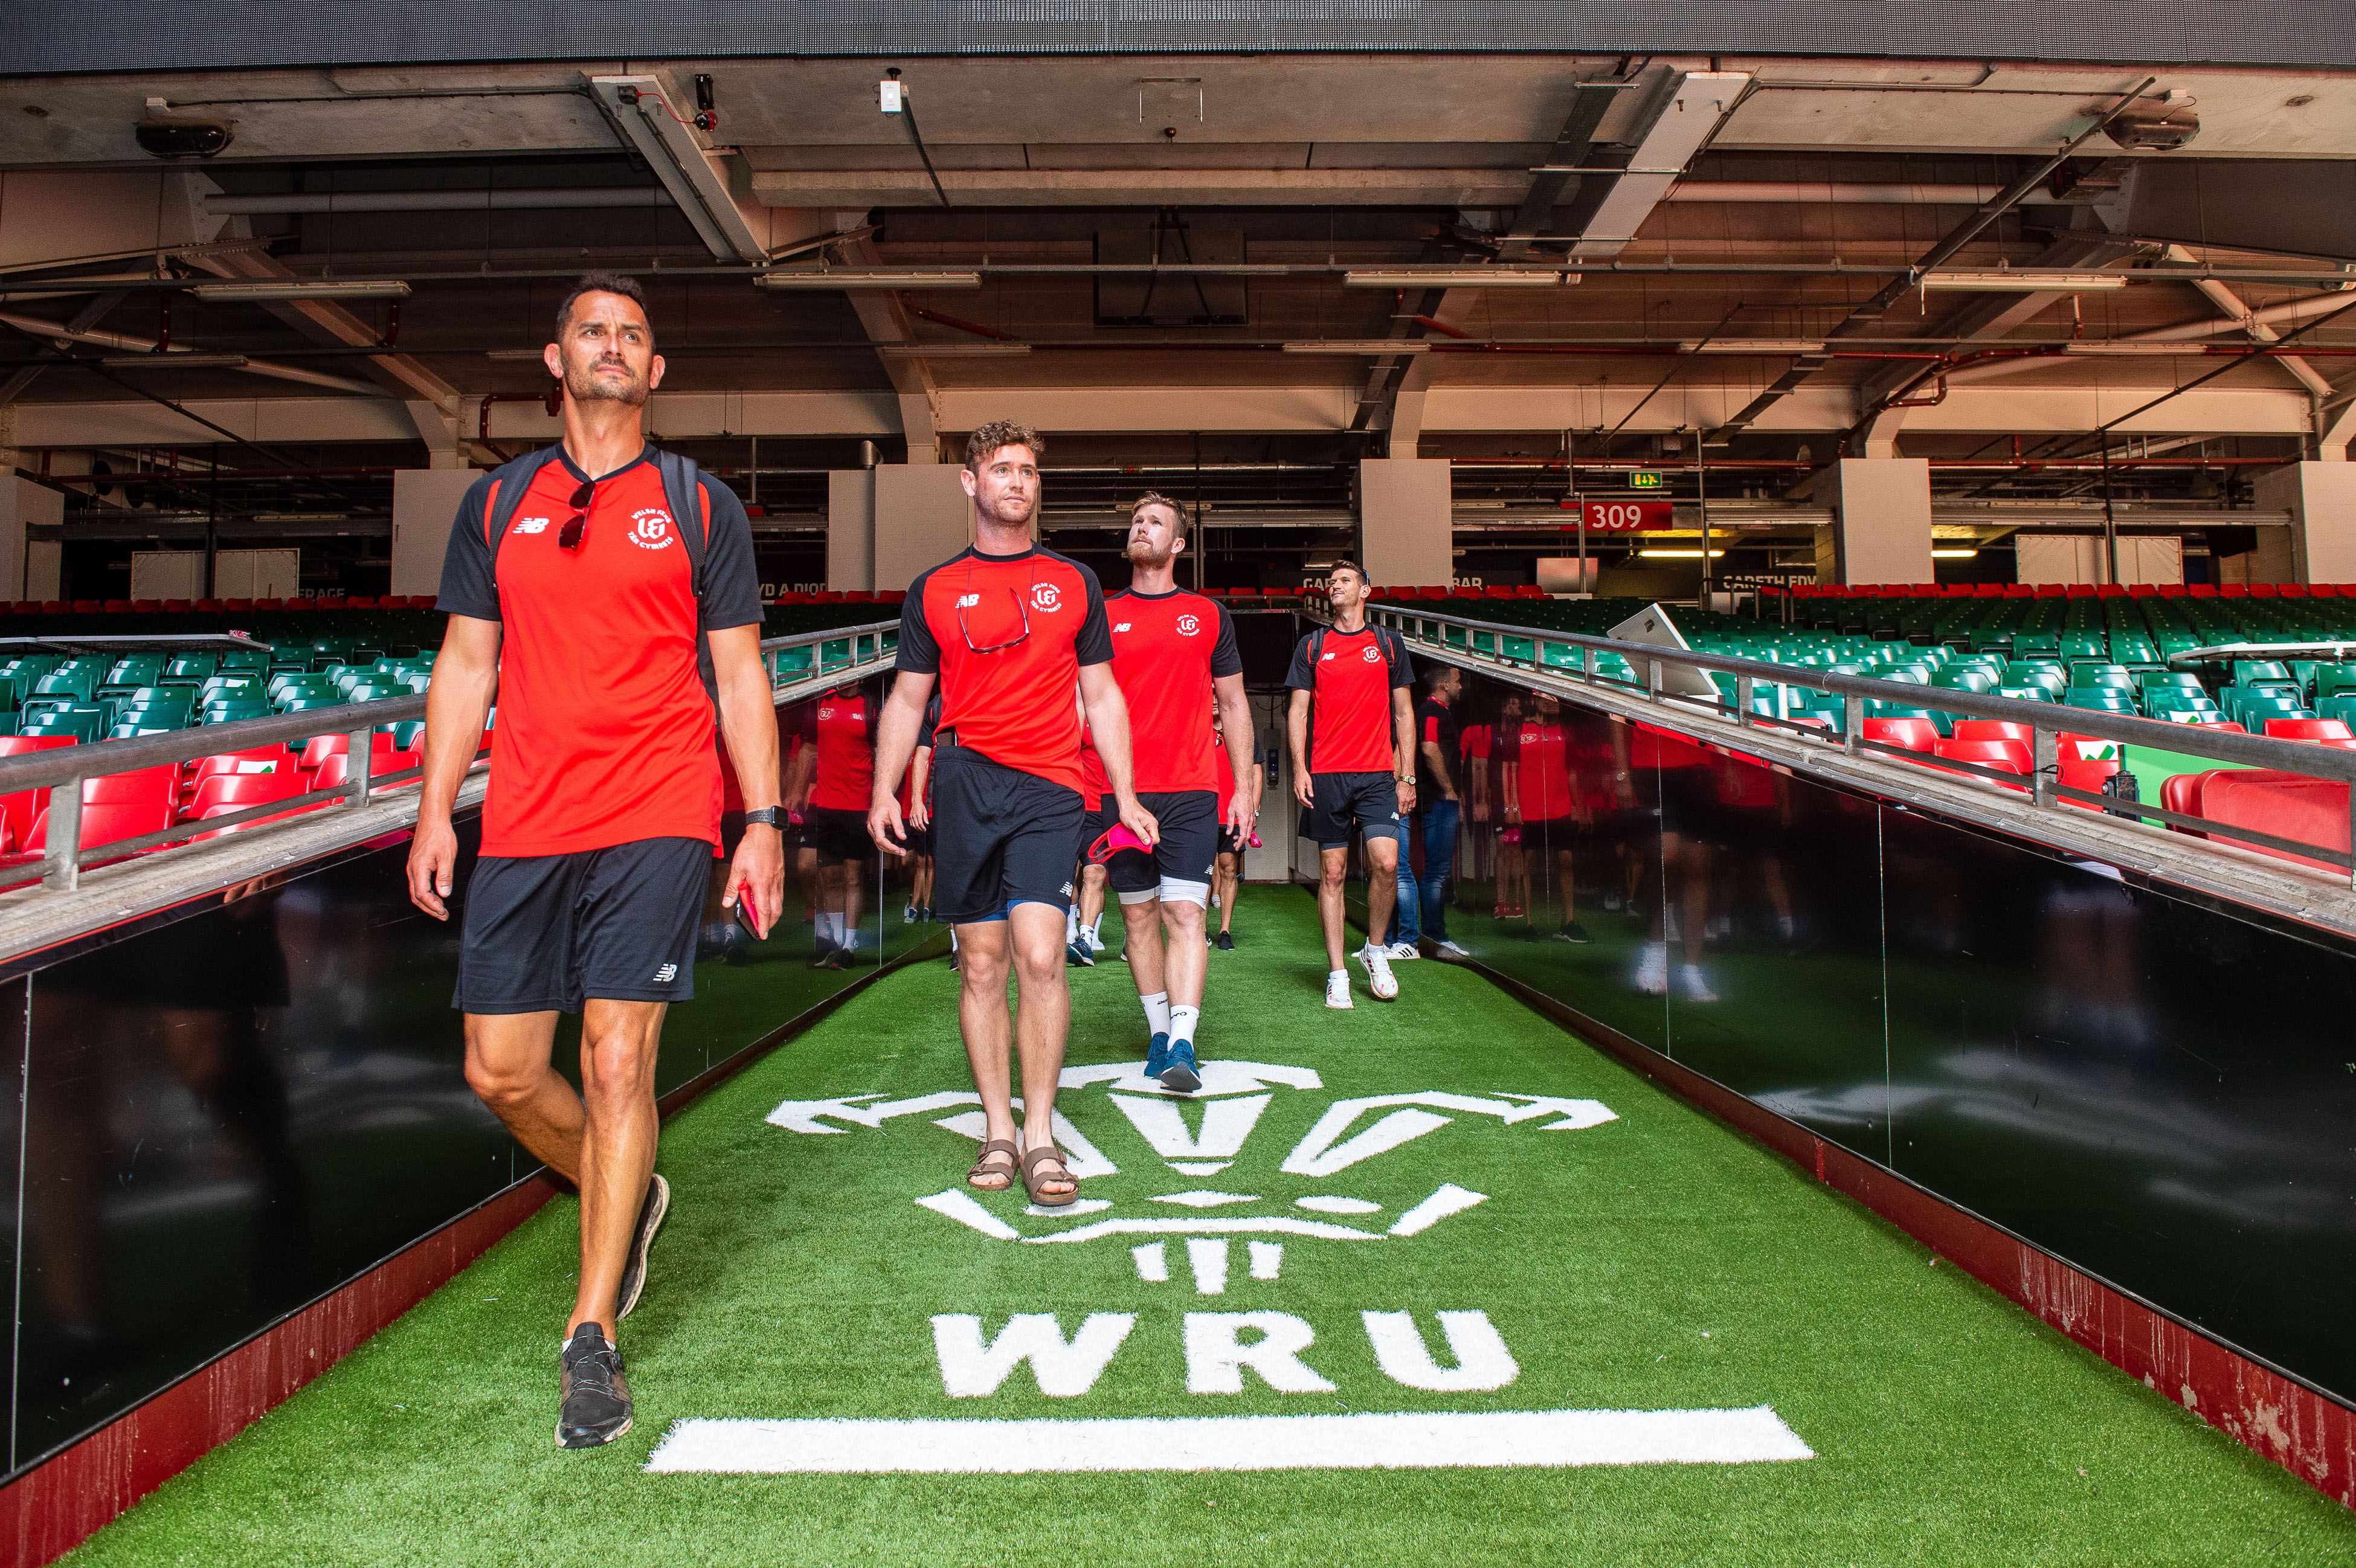 Welsh Fire visit the home of Welsh Rugby